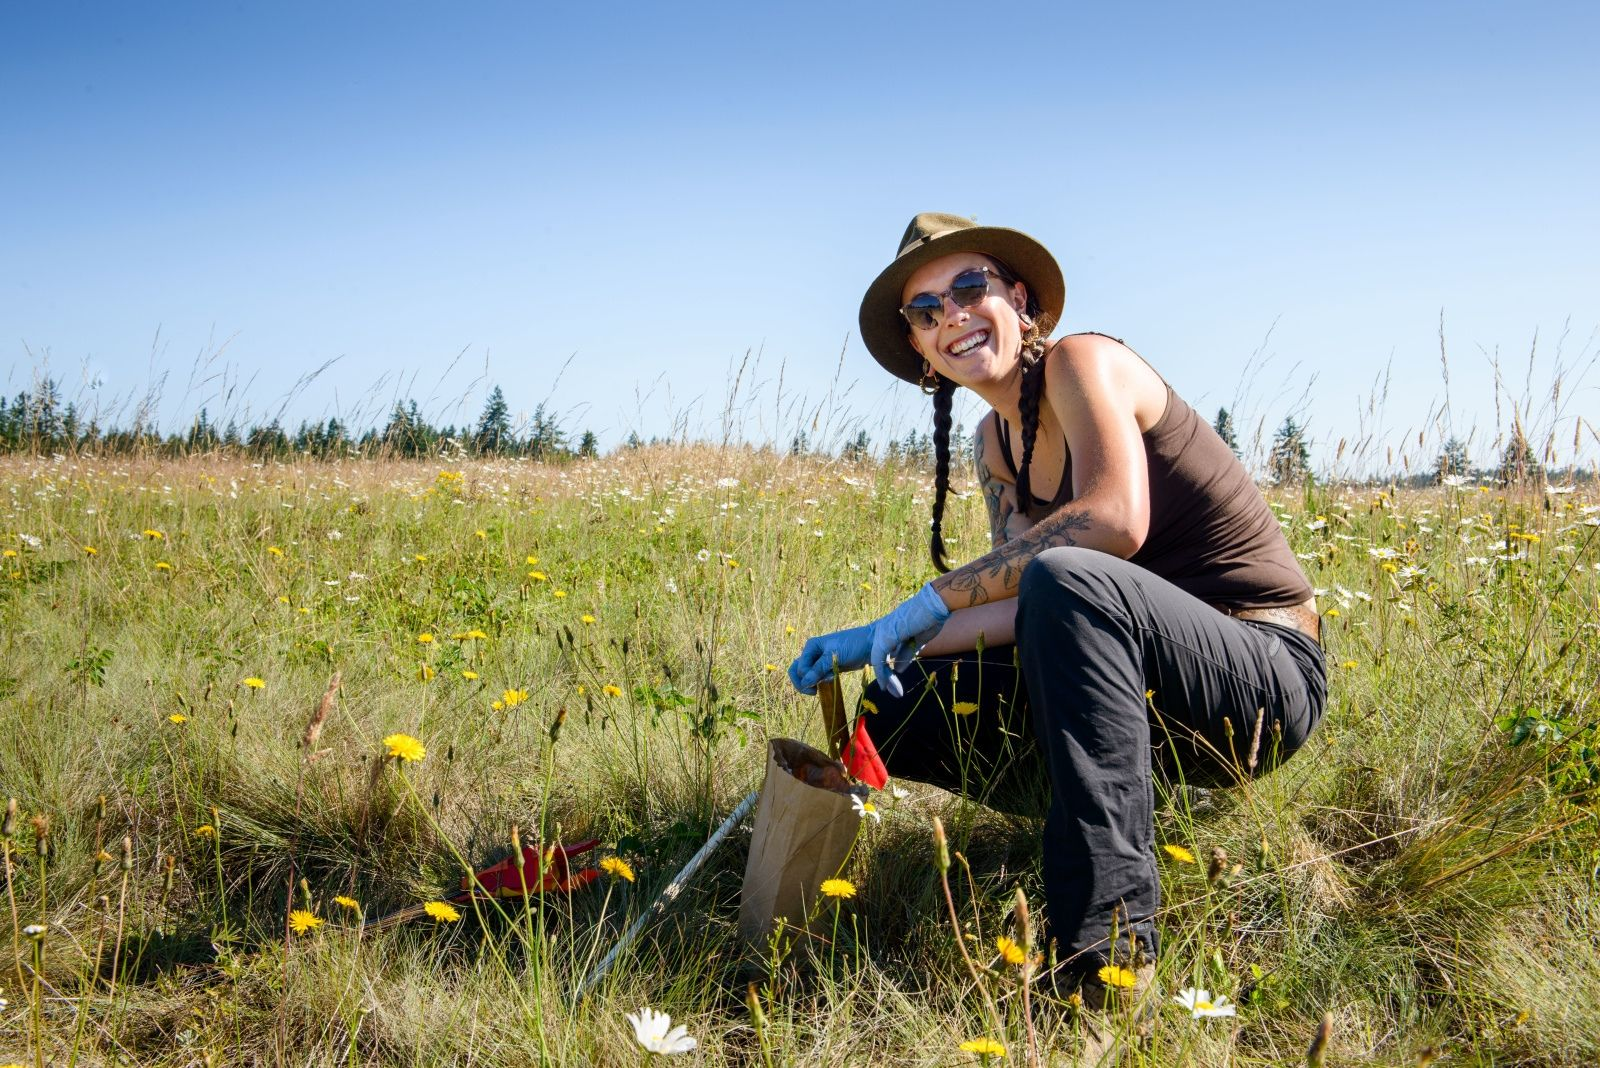 Summer Undergraduate Research Fellowships at The Evergreen State College Offer Hands-On Work Experience